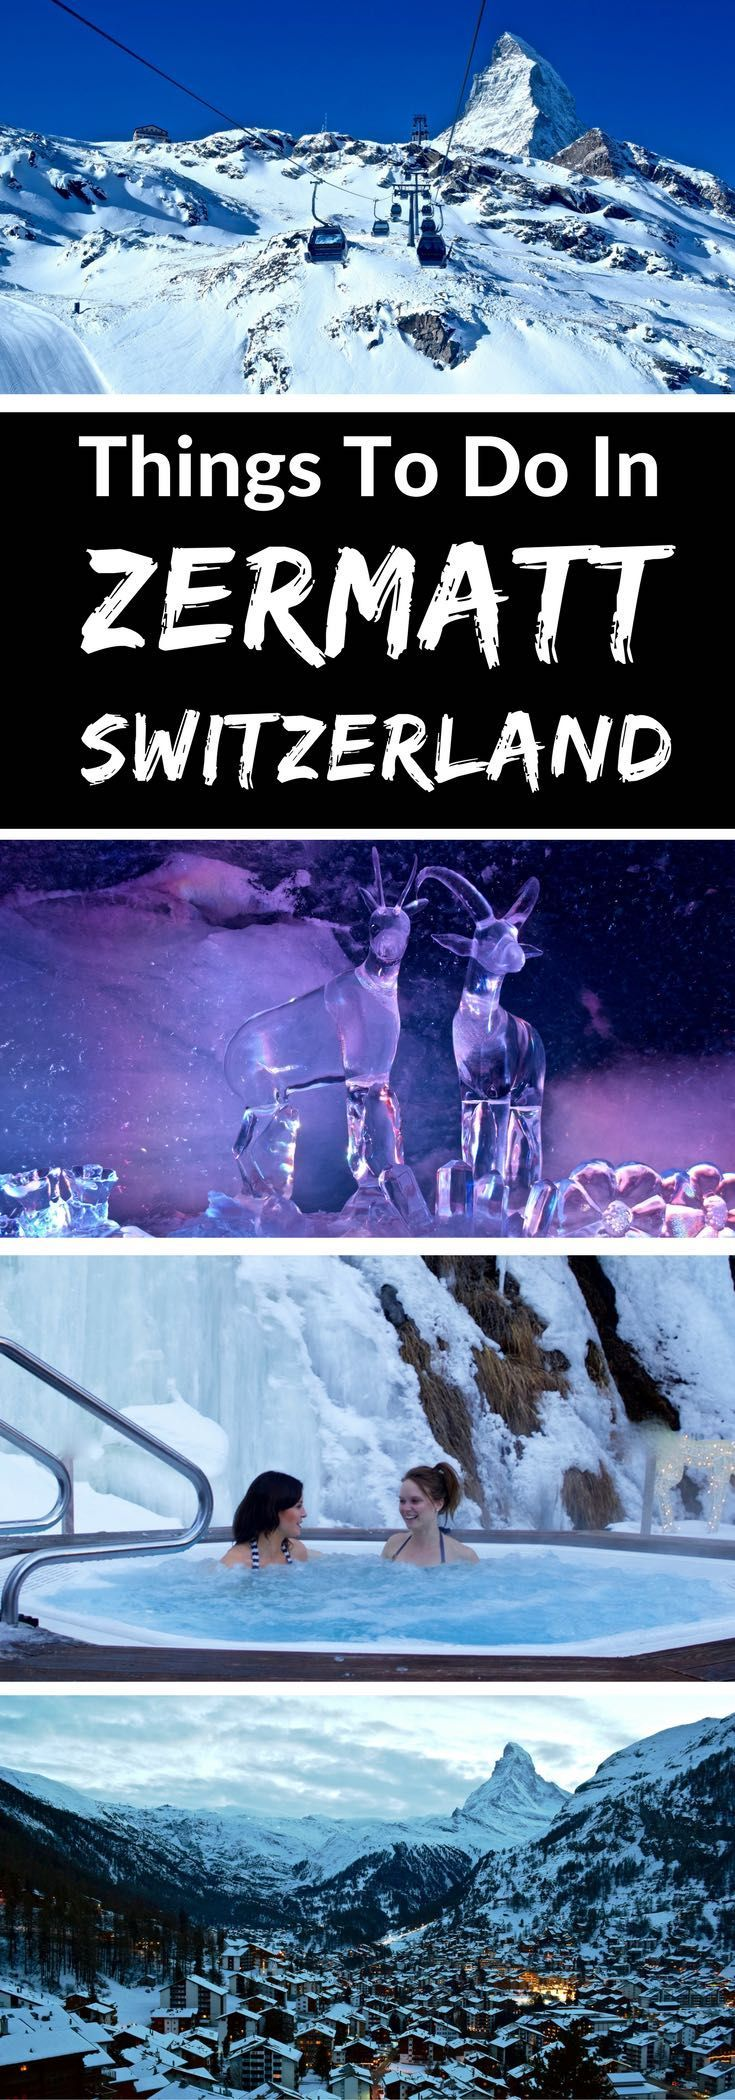 Top Things To Do In Zermatt Switzerland. Zermatt's relaxing spas, top restaurants, stunning views and great activities mean there are plenty of great things to do for non-skiers who fancy a winter holiday in Switzerland.